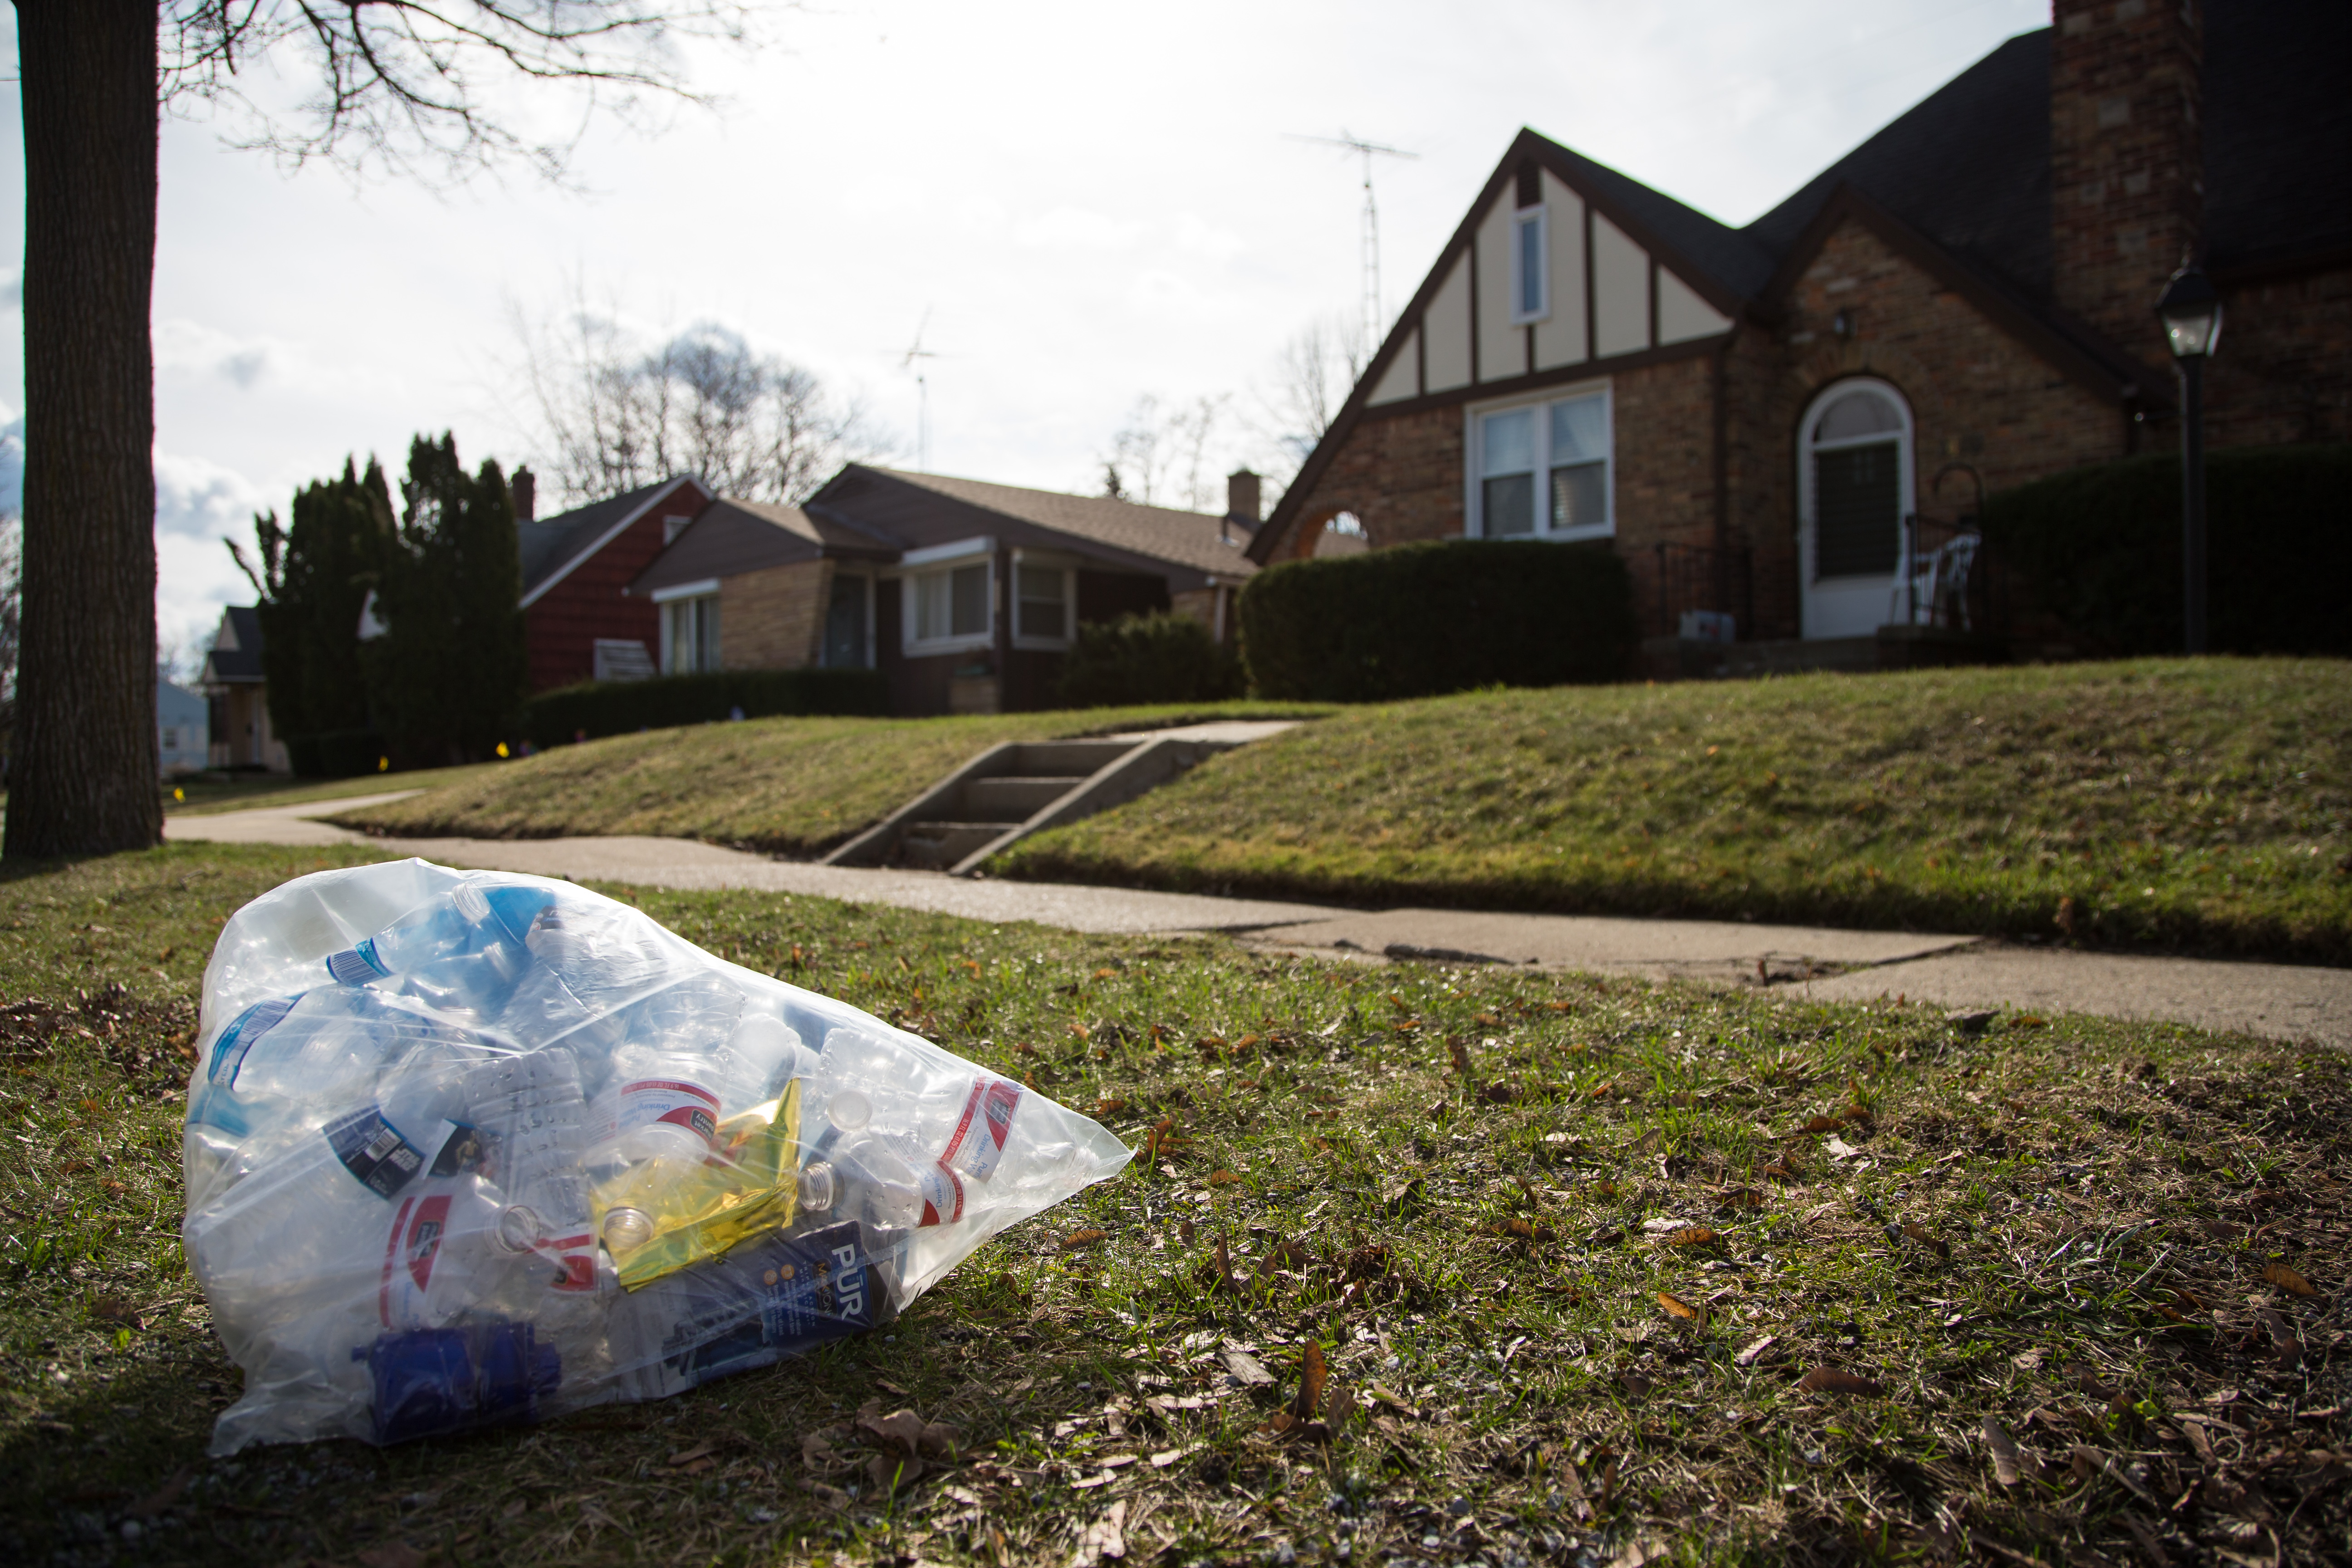 A trash bag filled with empty water bottles and water filters outside of a house on March 17, 2016 in Flint, Michigan.